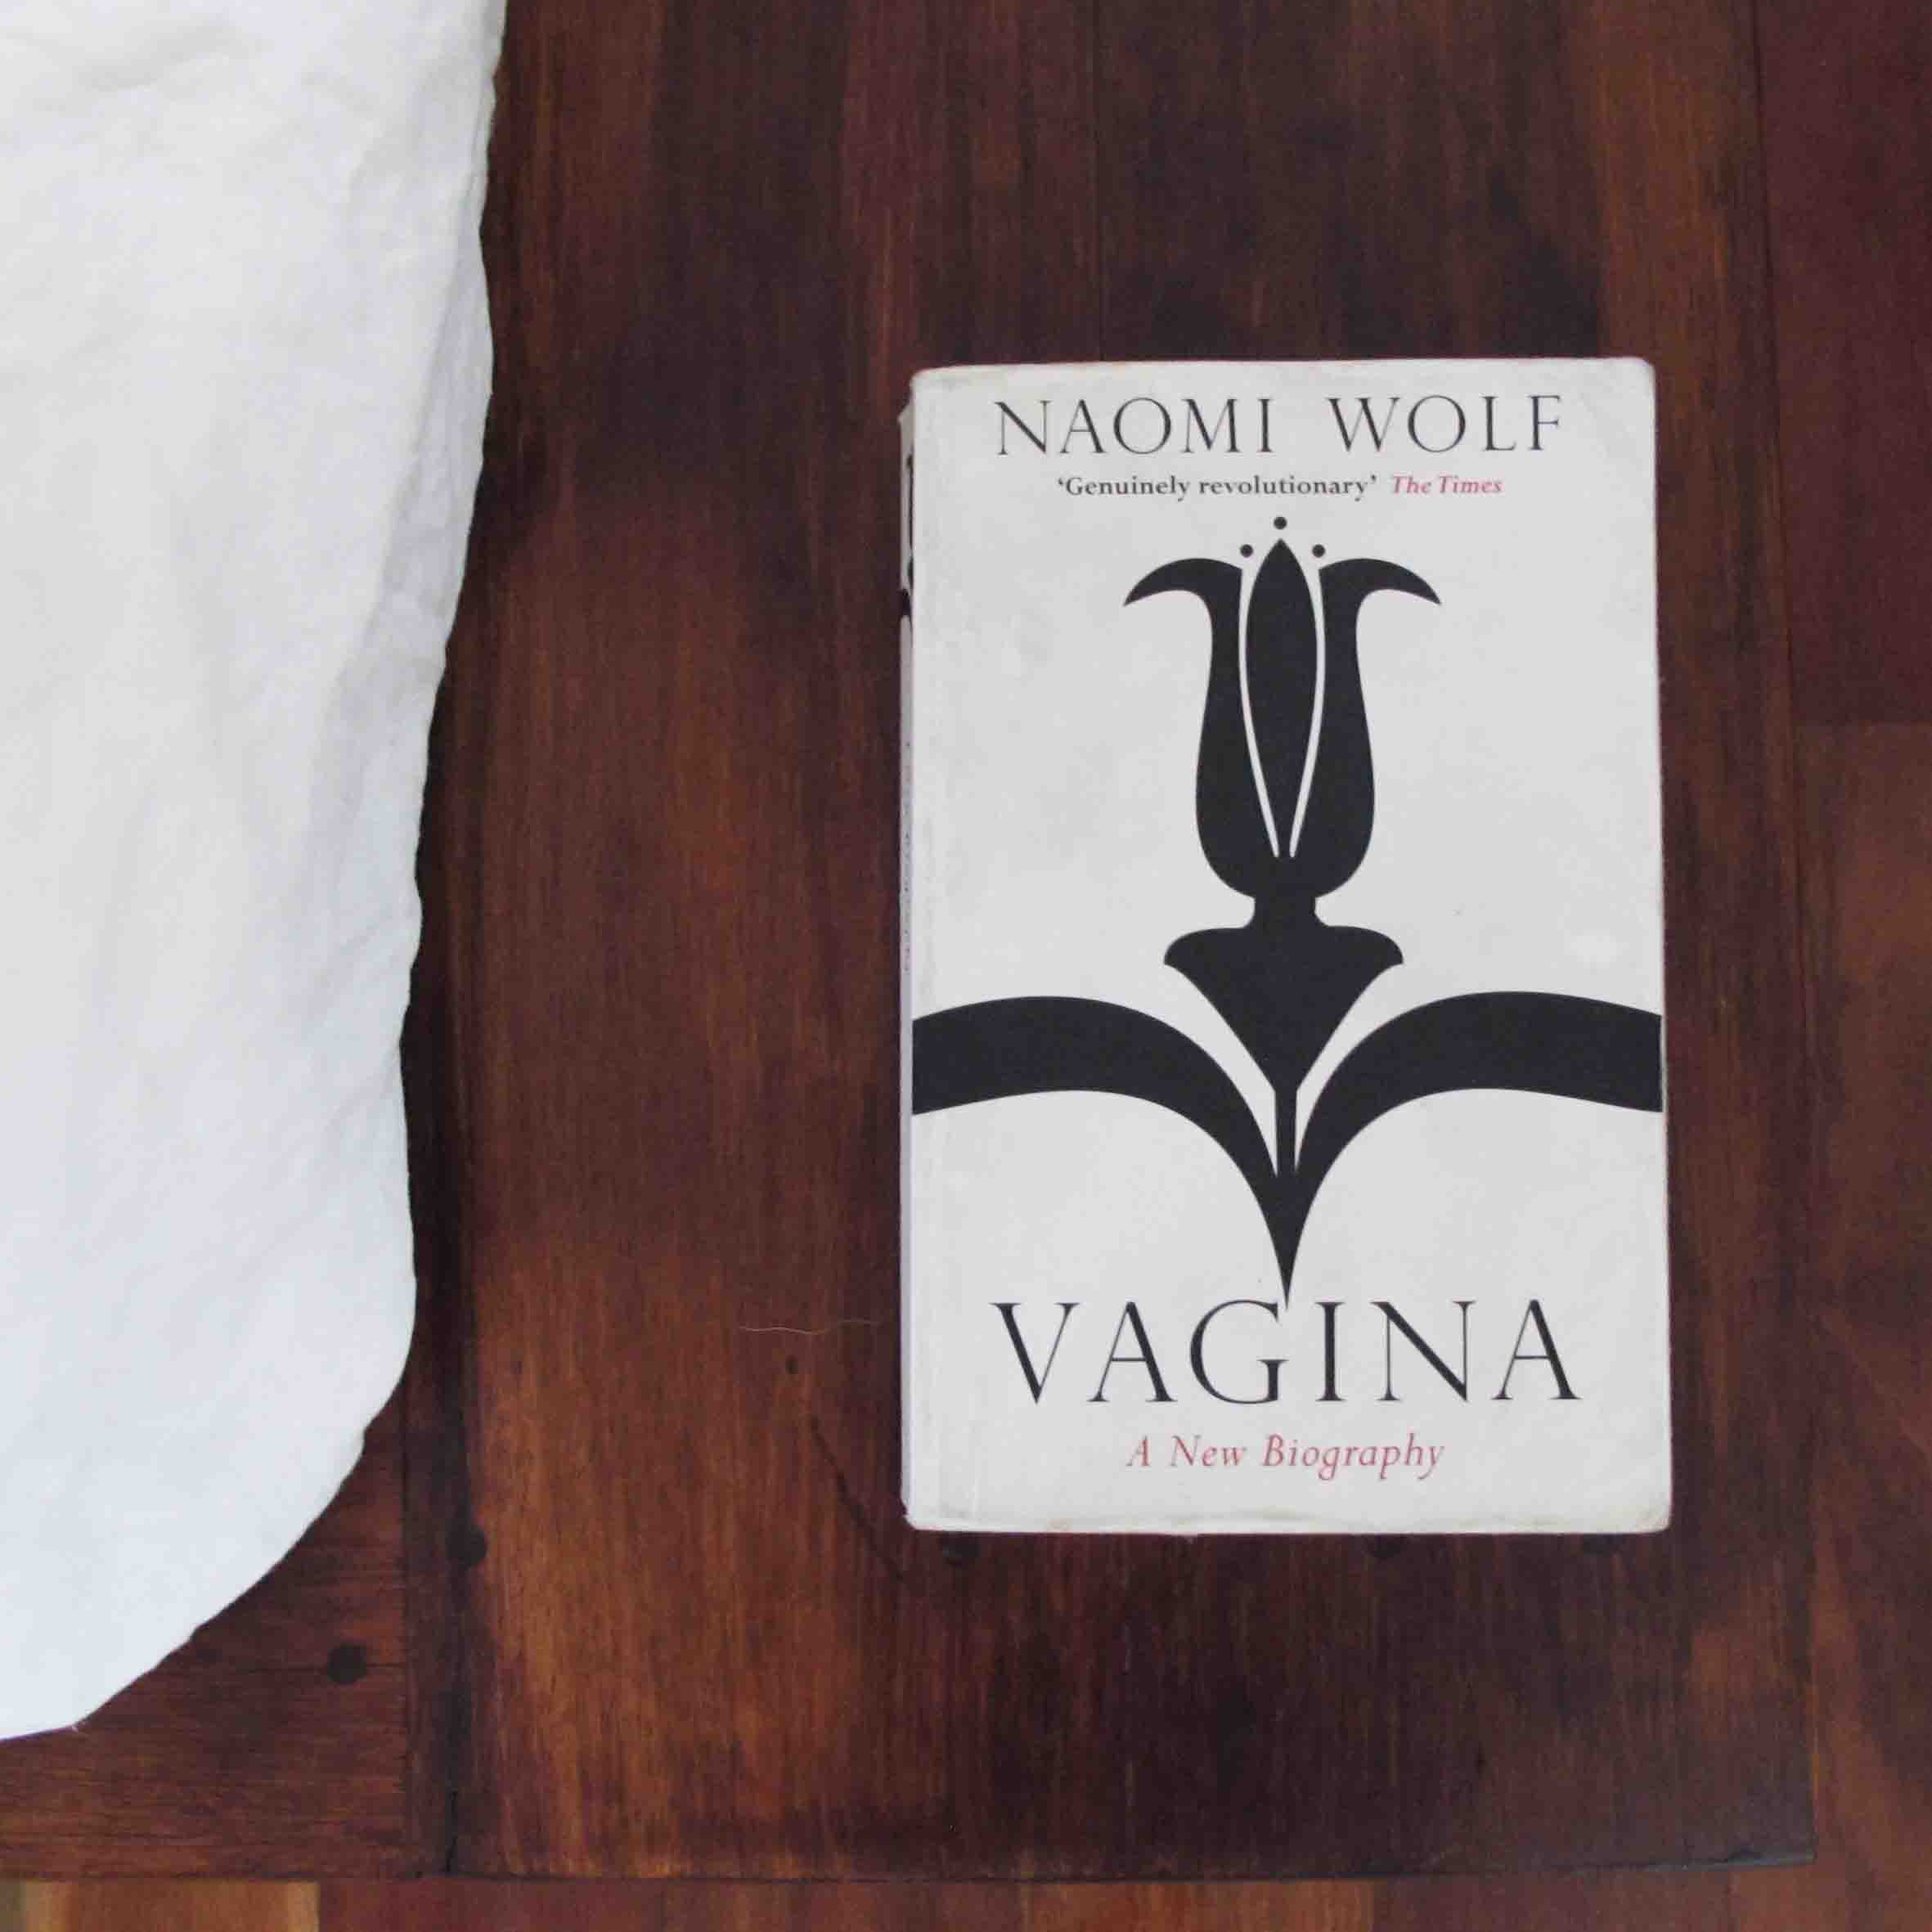 Wolf, N 2013, Vagina, A New Biography